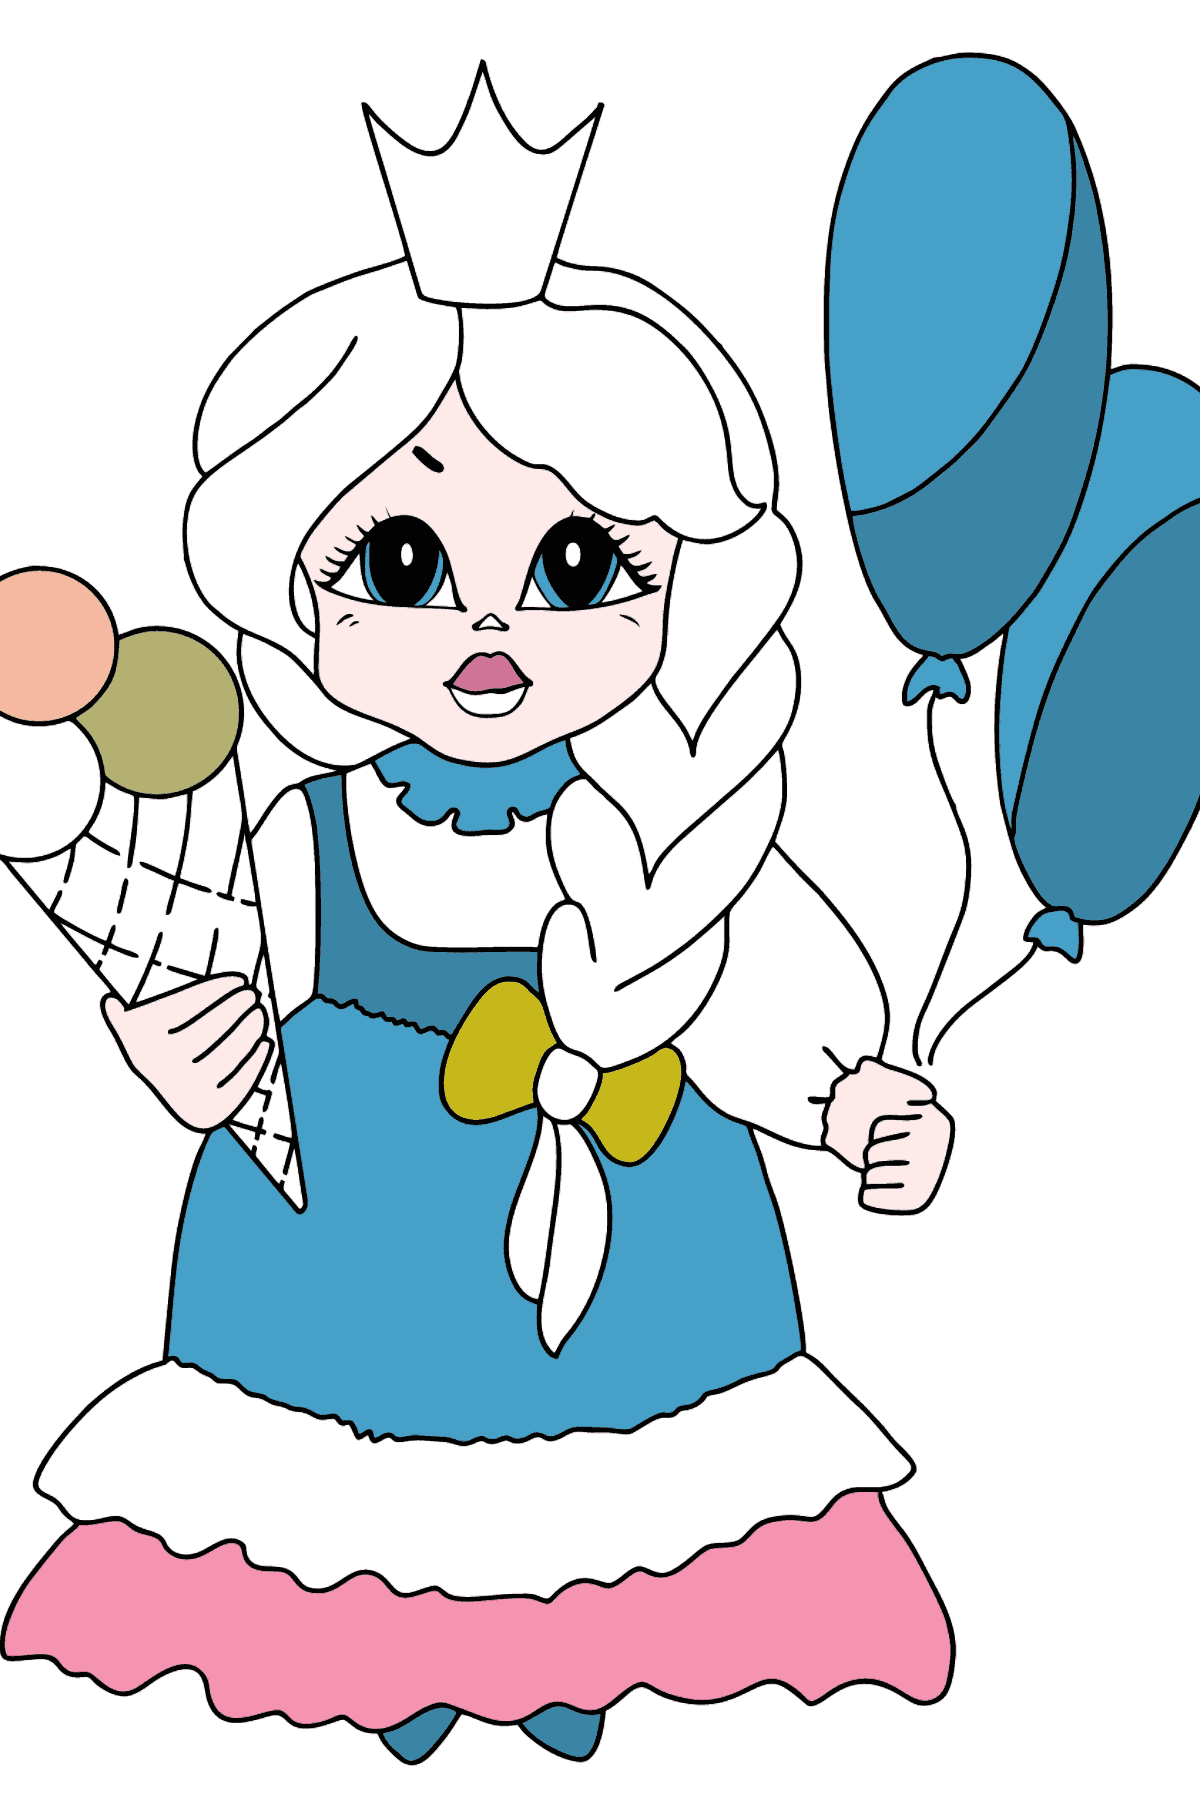 Coloring Page - A Princess with Ice Сream - For Girls - Coloring Pages for Kids